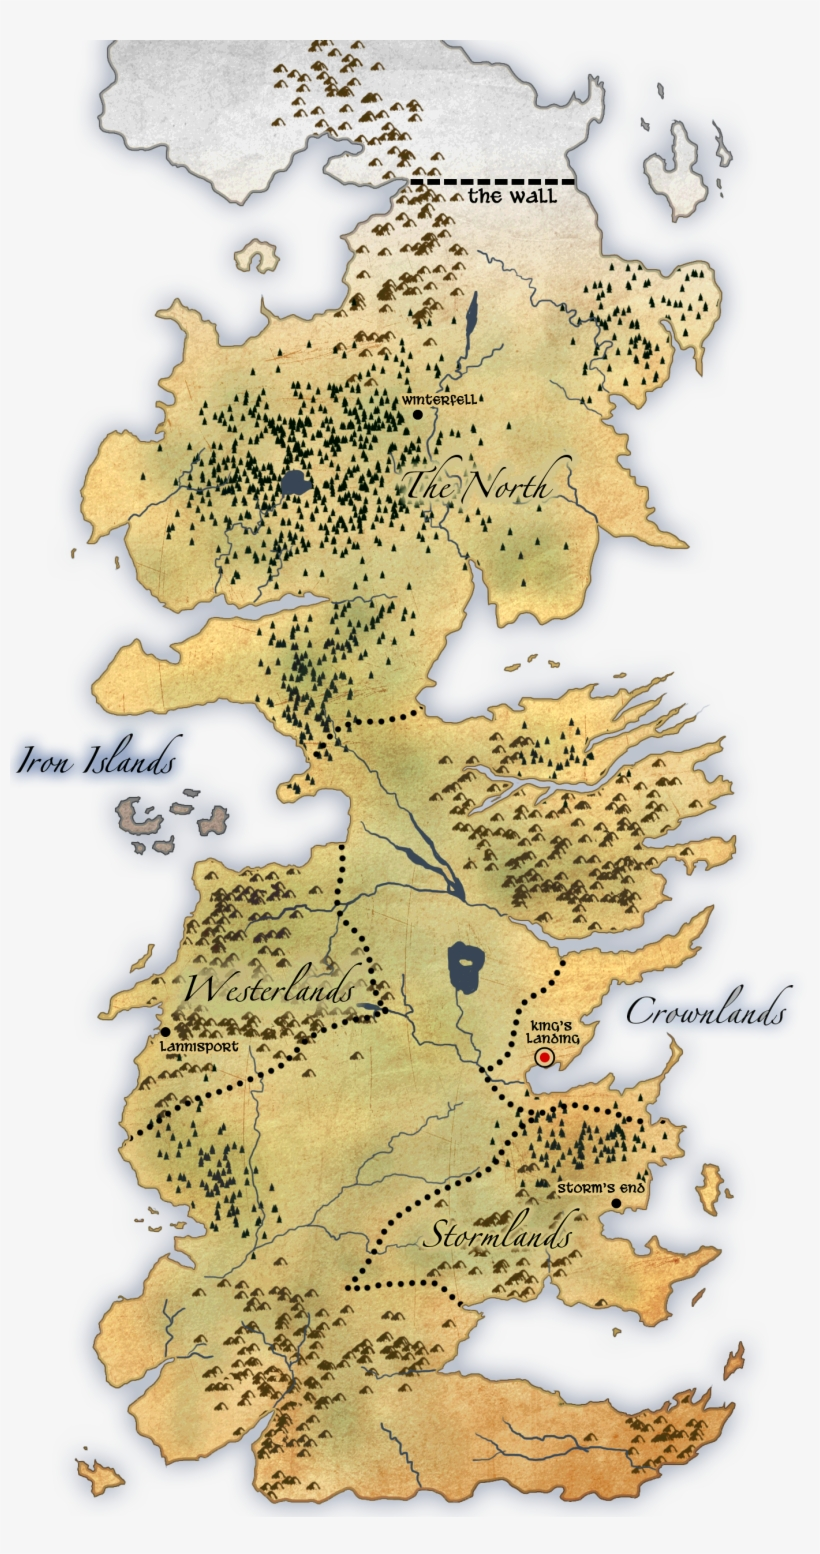 Westeros Karte Hd.Westeros Map Free Transparent Png Download Pngkey